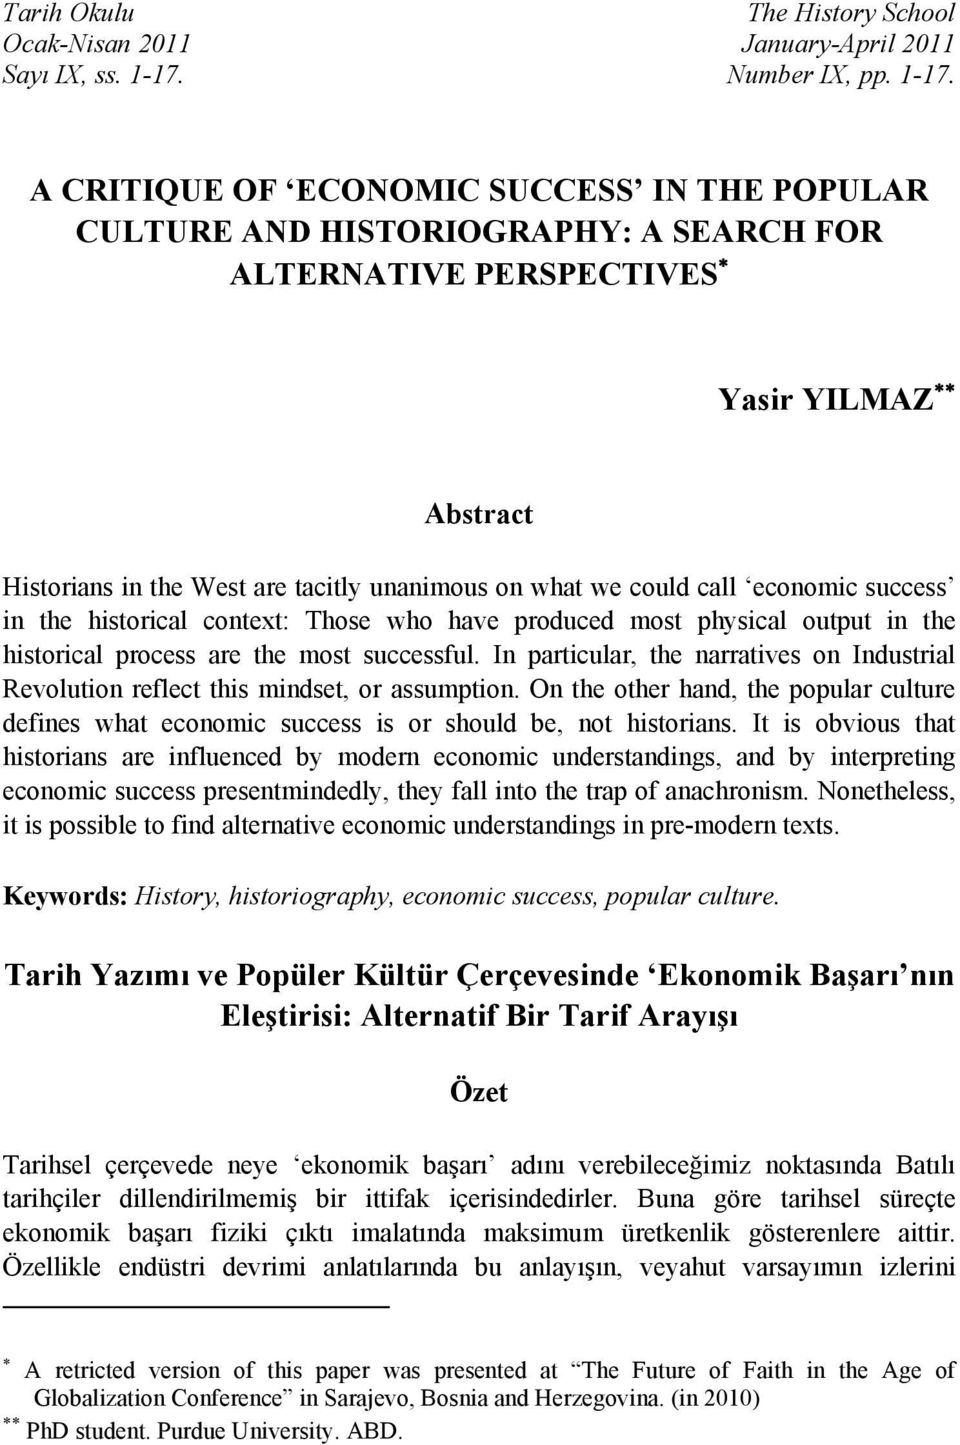 A CRITIQUE OF ECONOMIC SUCCESS IN THE POPULAR CULTURE AND HISTORIOGRAPHY: A SEARCH FOR ALTERNATIVE PERSPECTIVES Yasir YILMAZ Abstract Historians in the West are tacitly unanimous on what we could